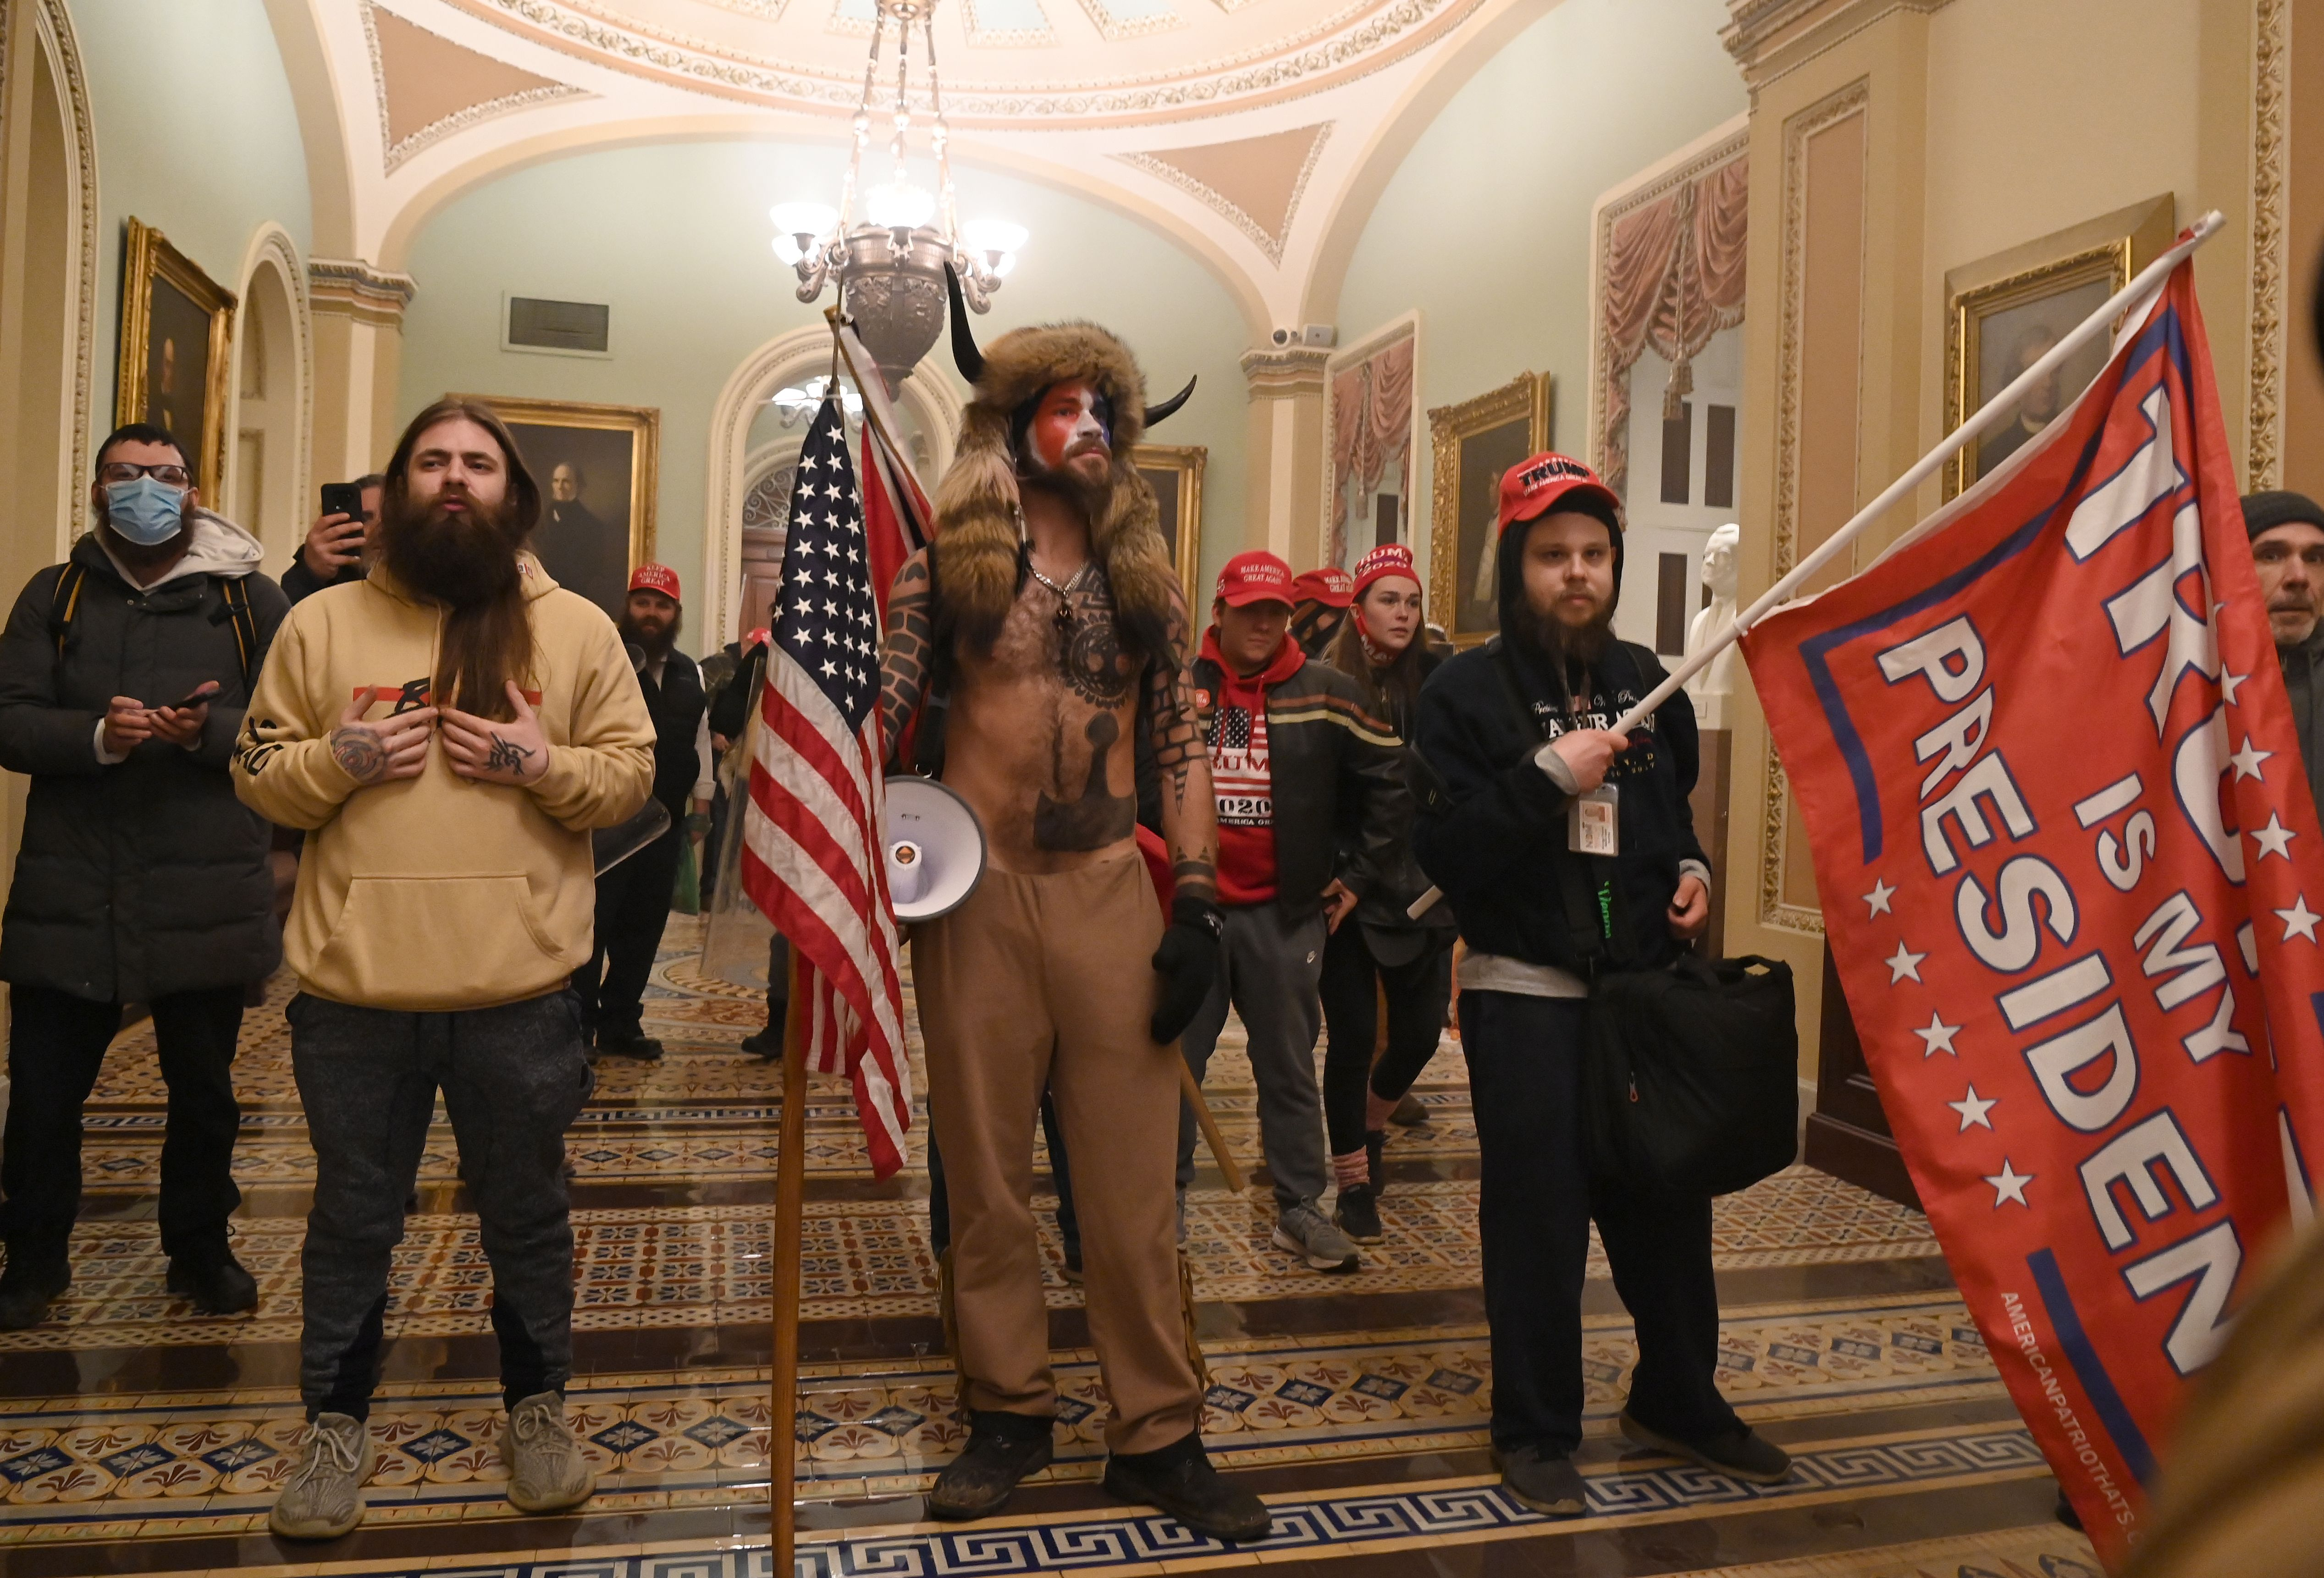 Jan 6 rioters including the so-called QAnon Shaman center feel protected today with American history and the GOP on their side ready to put treasonous insurrection in the rearview mirror Curtis writes  Saul LoebAFP via Getty Images file photo